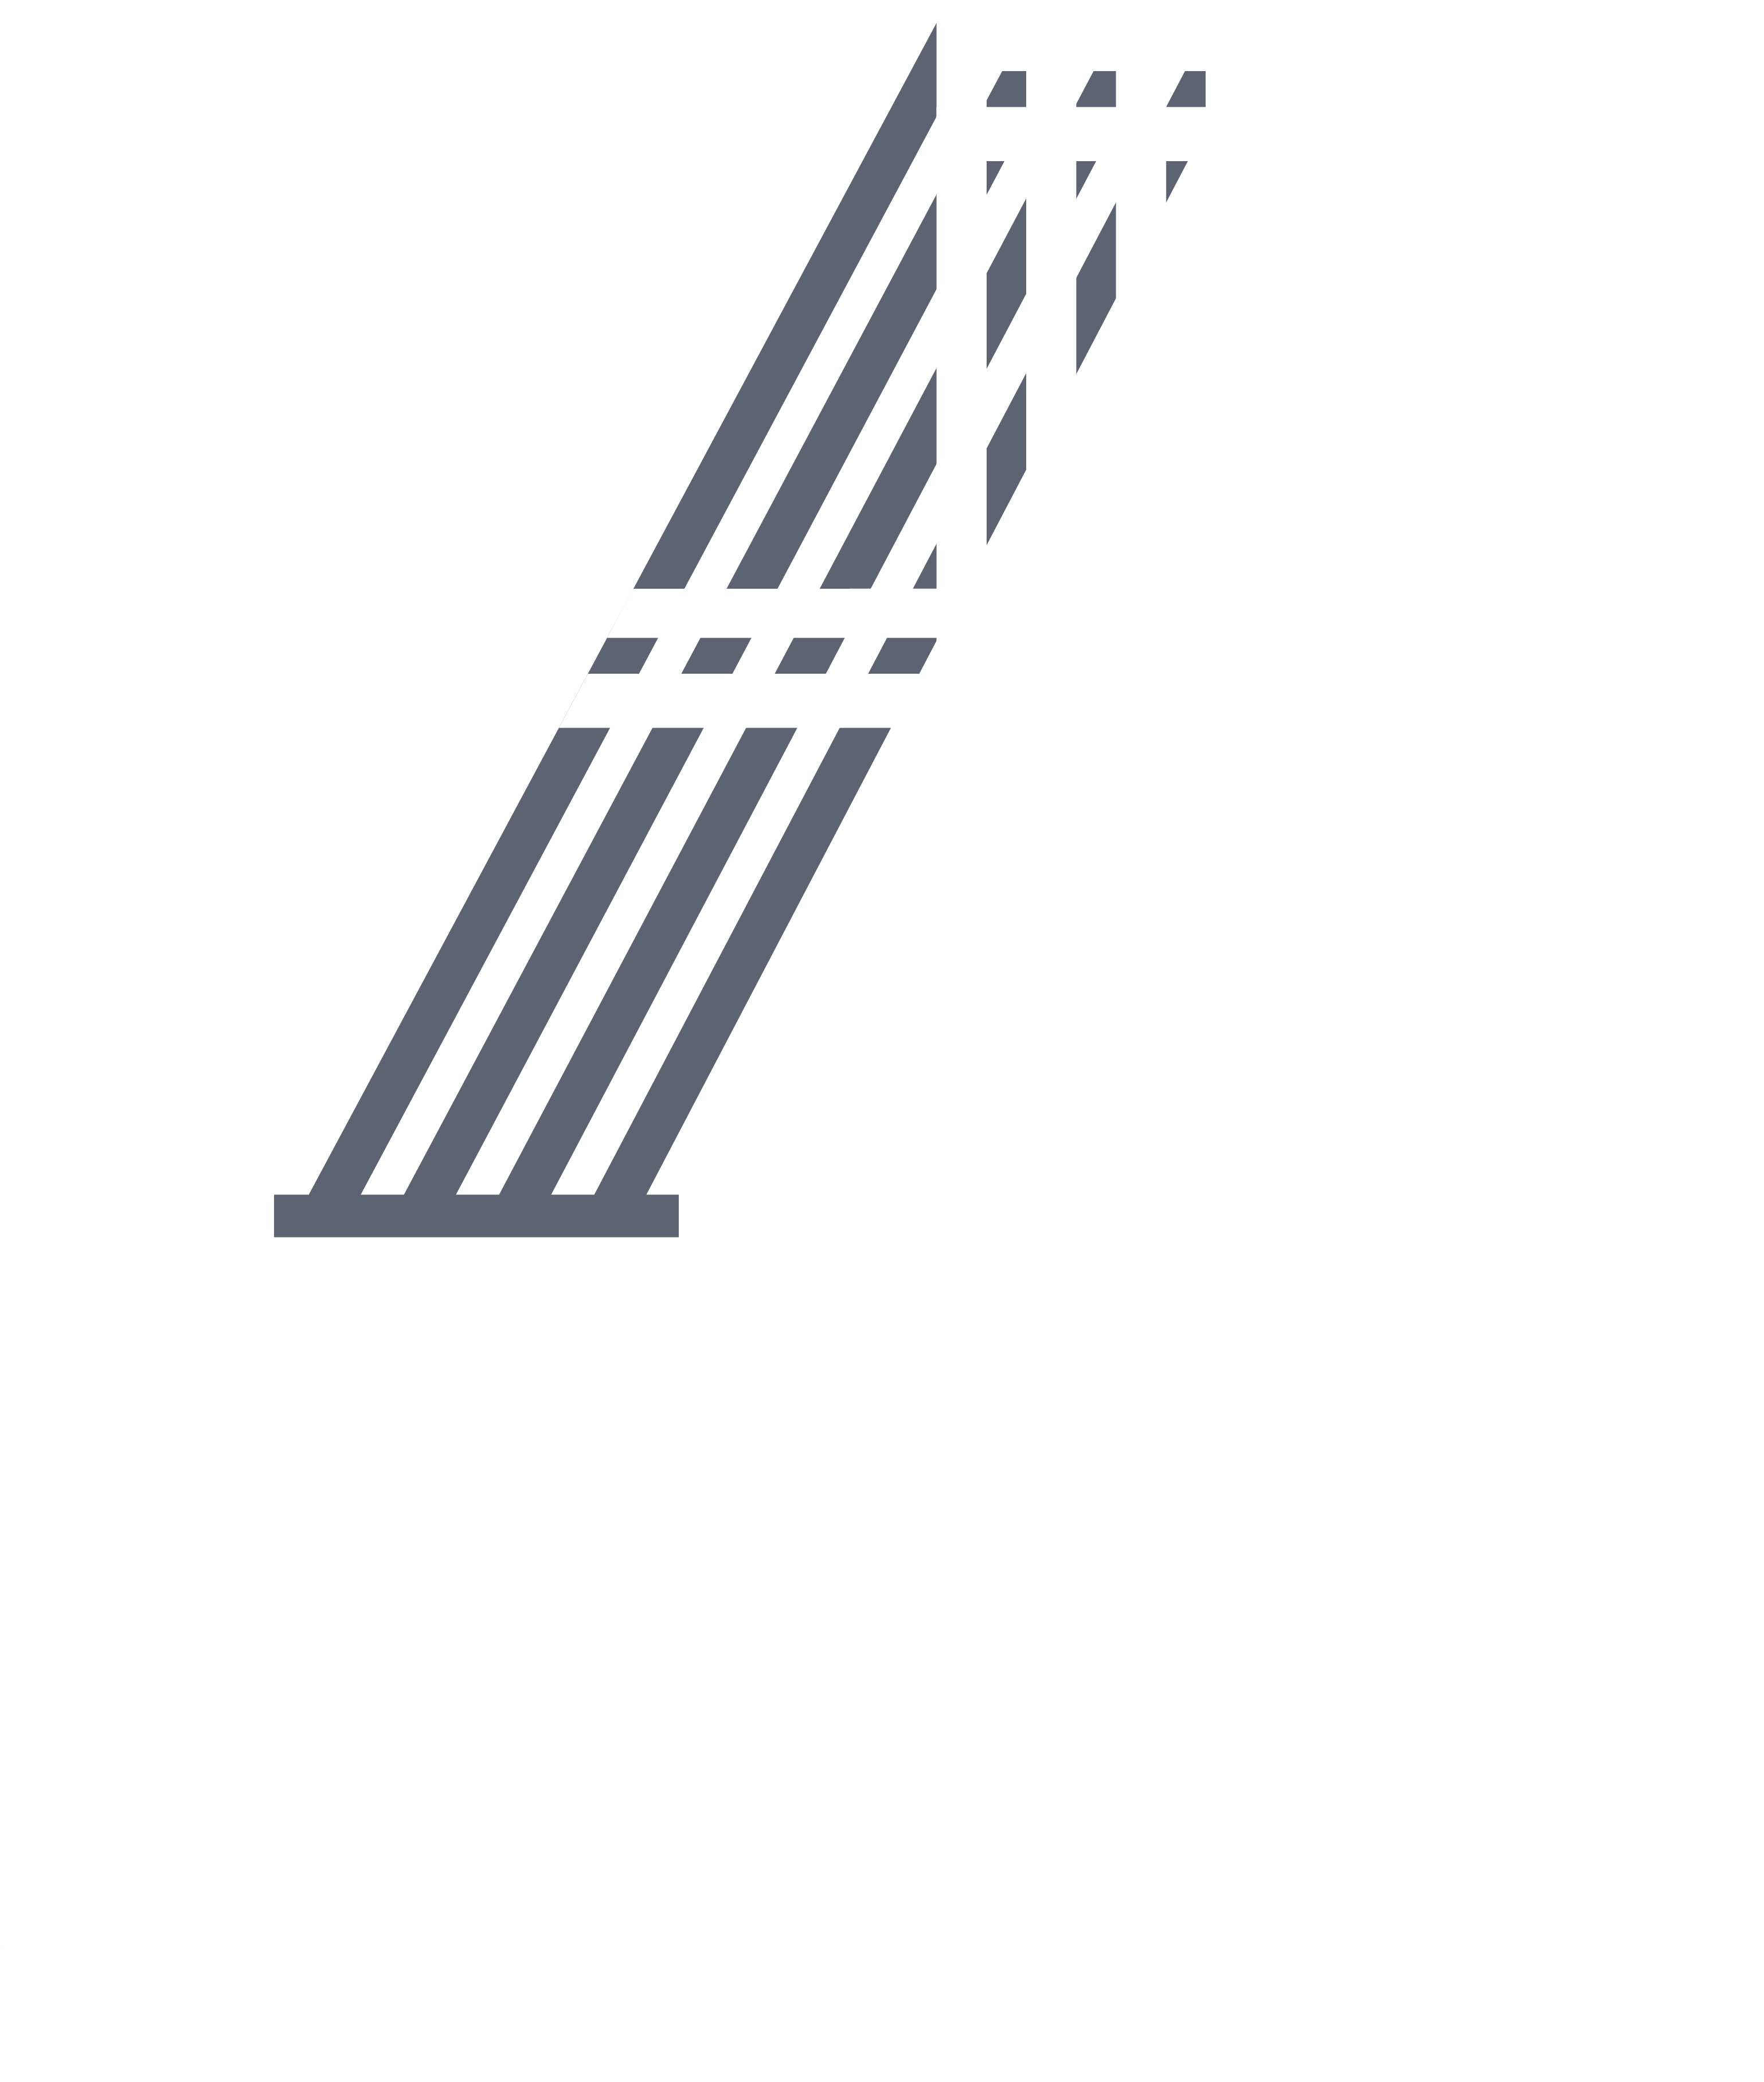 Fedders Construction